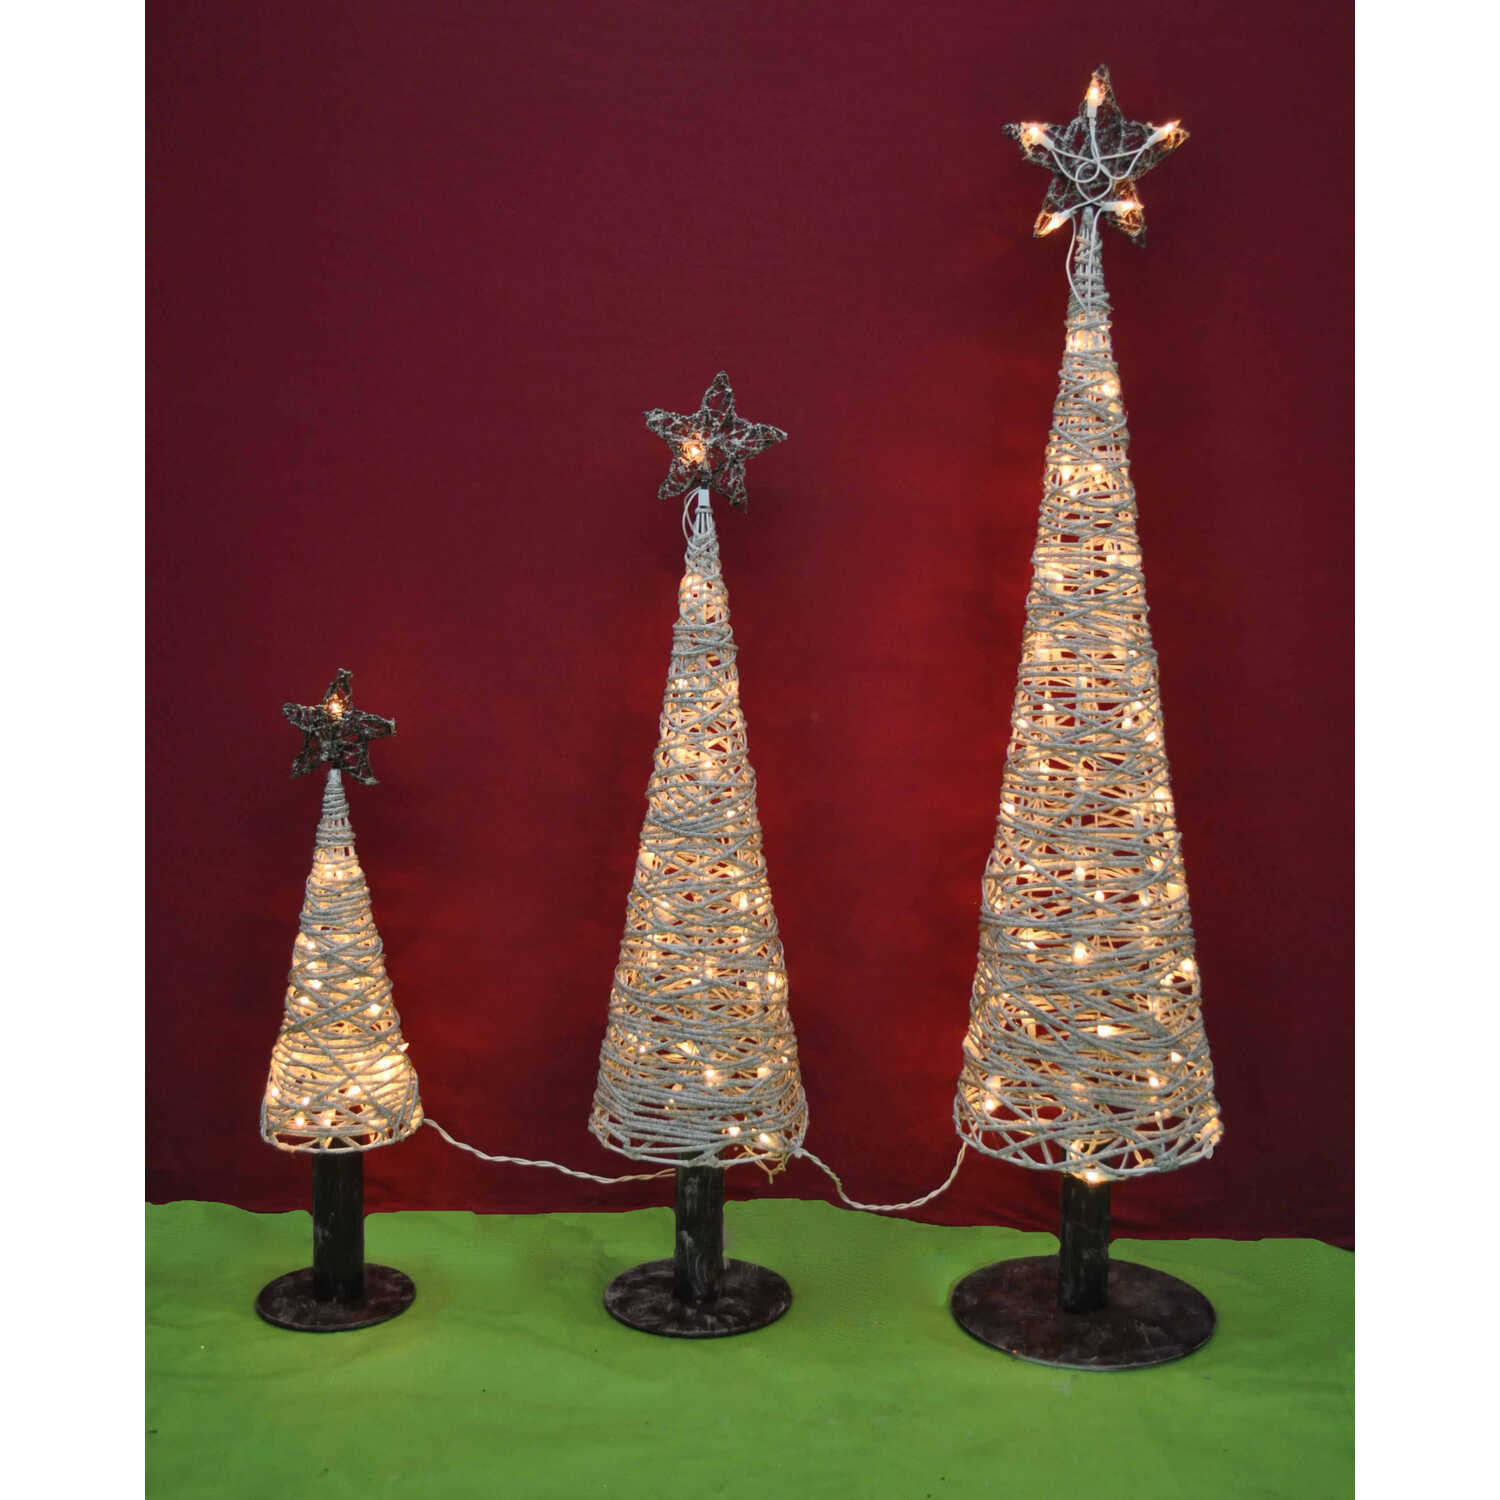 Celebrations  Cone Tree  LED Yard Art  White  Birch  3 pc.